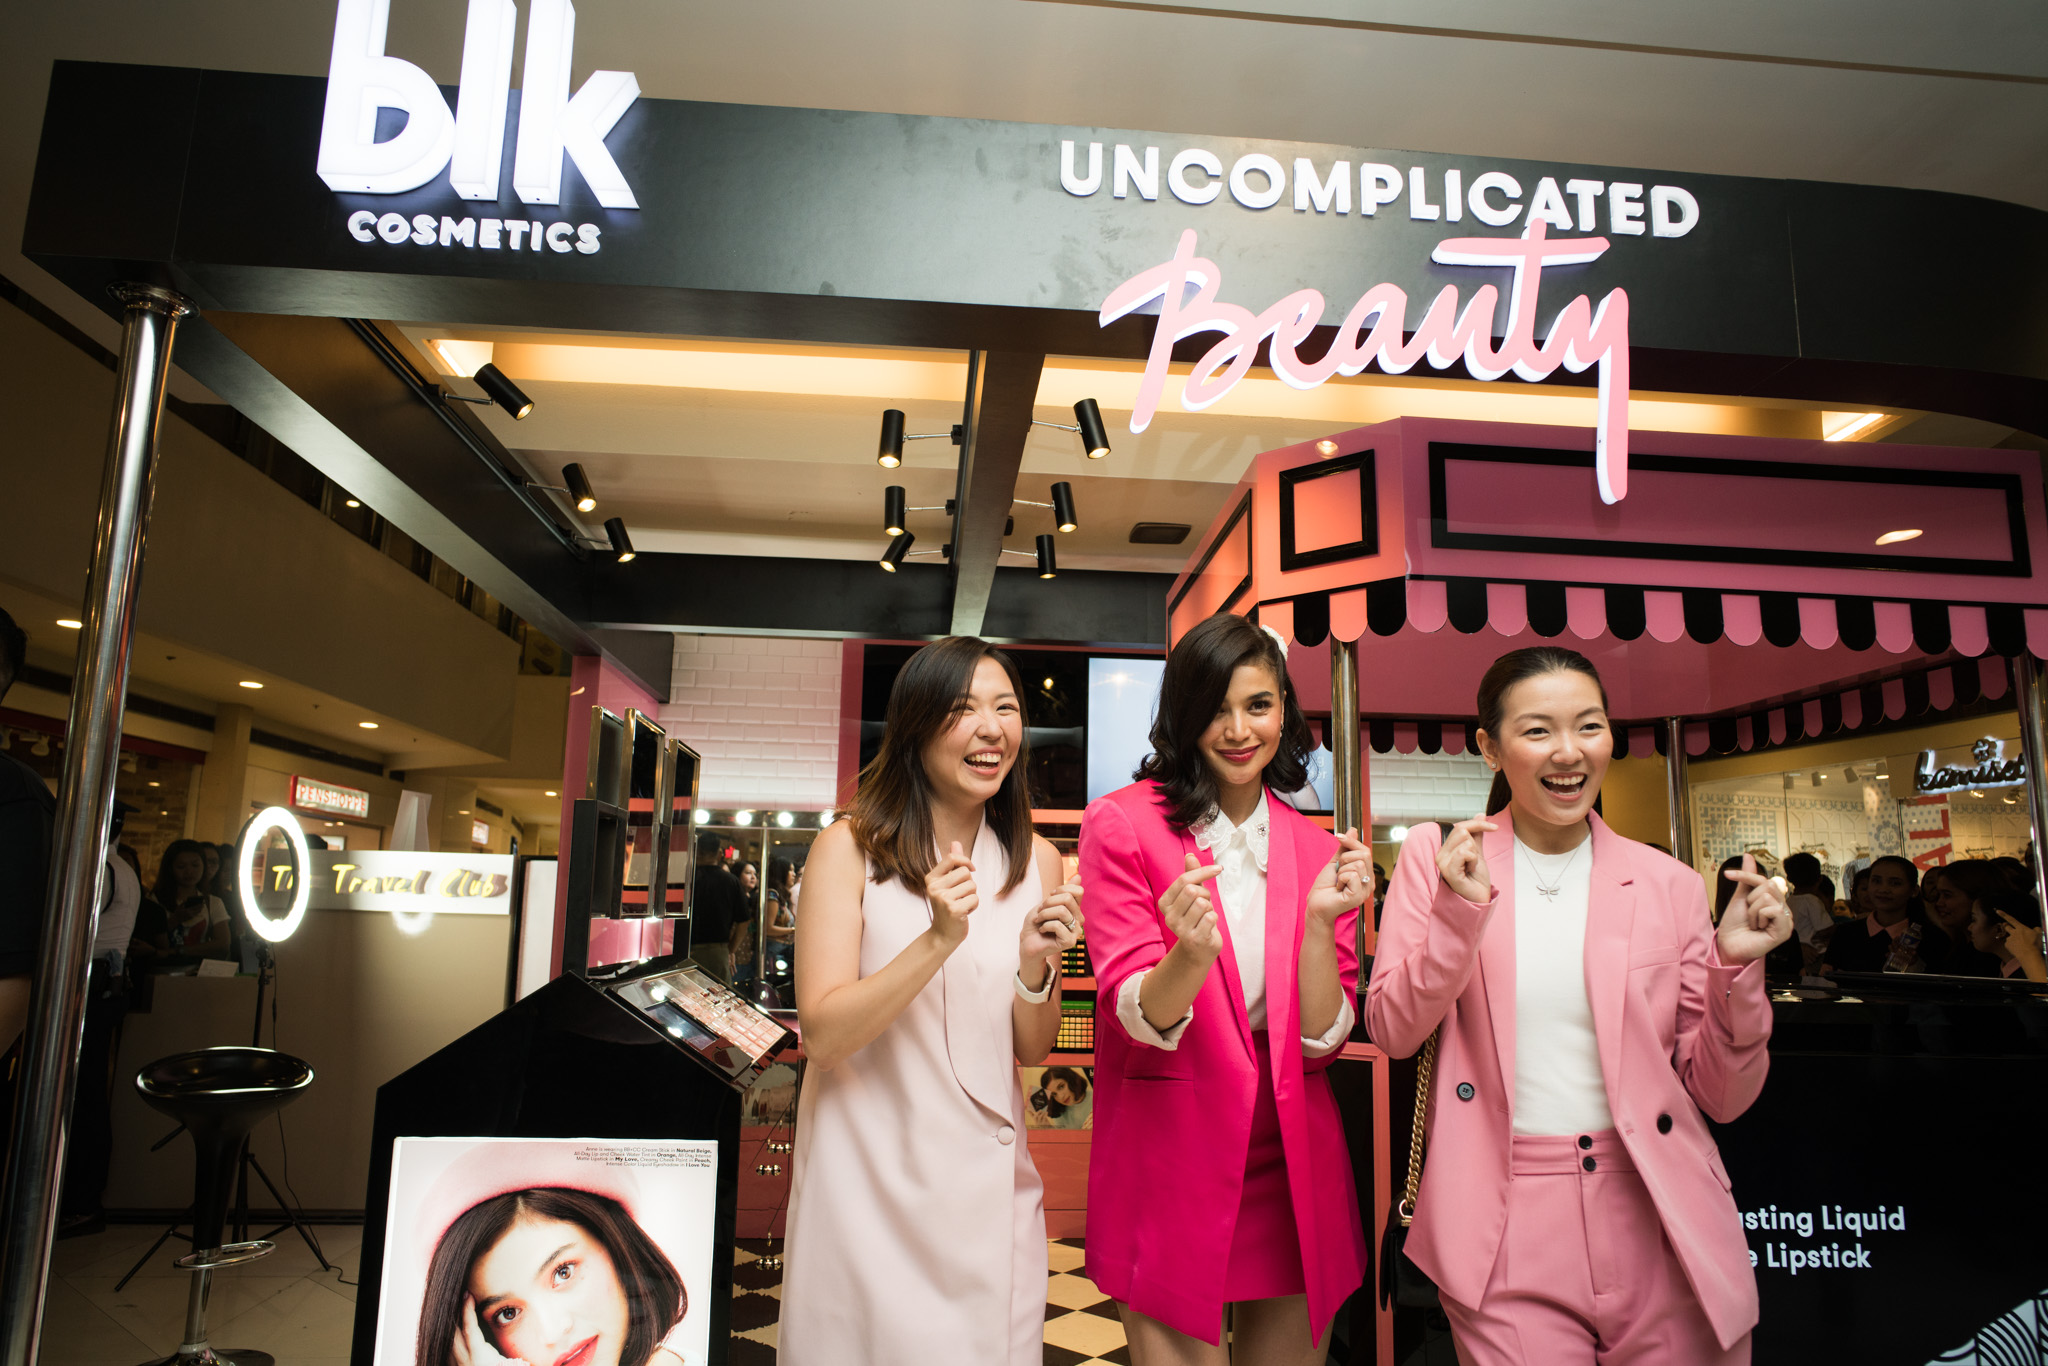 THE WOMEN OF BLK. Anne, who is the brand's creative director, poses with CEO Jacque Gutierrez and managing partner Stephanie Abellada.